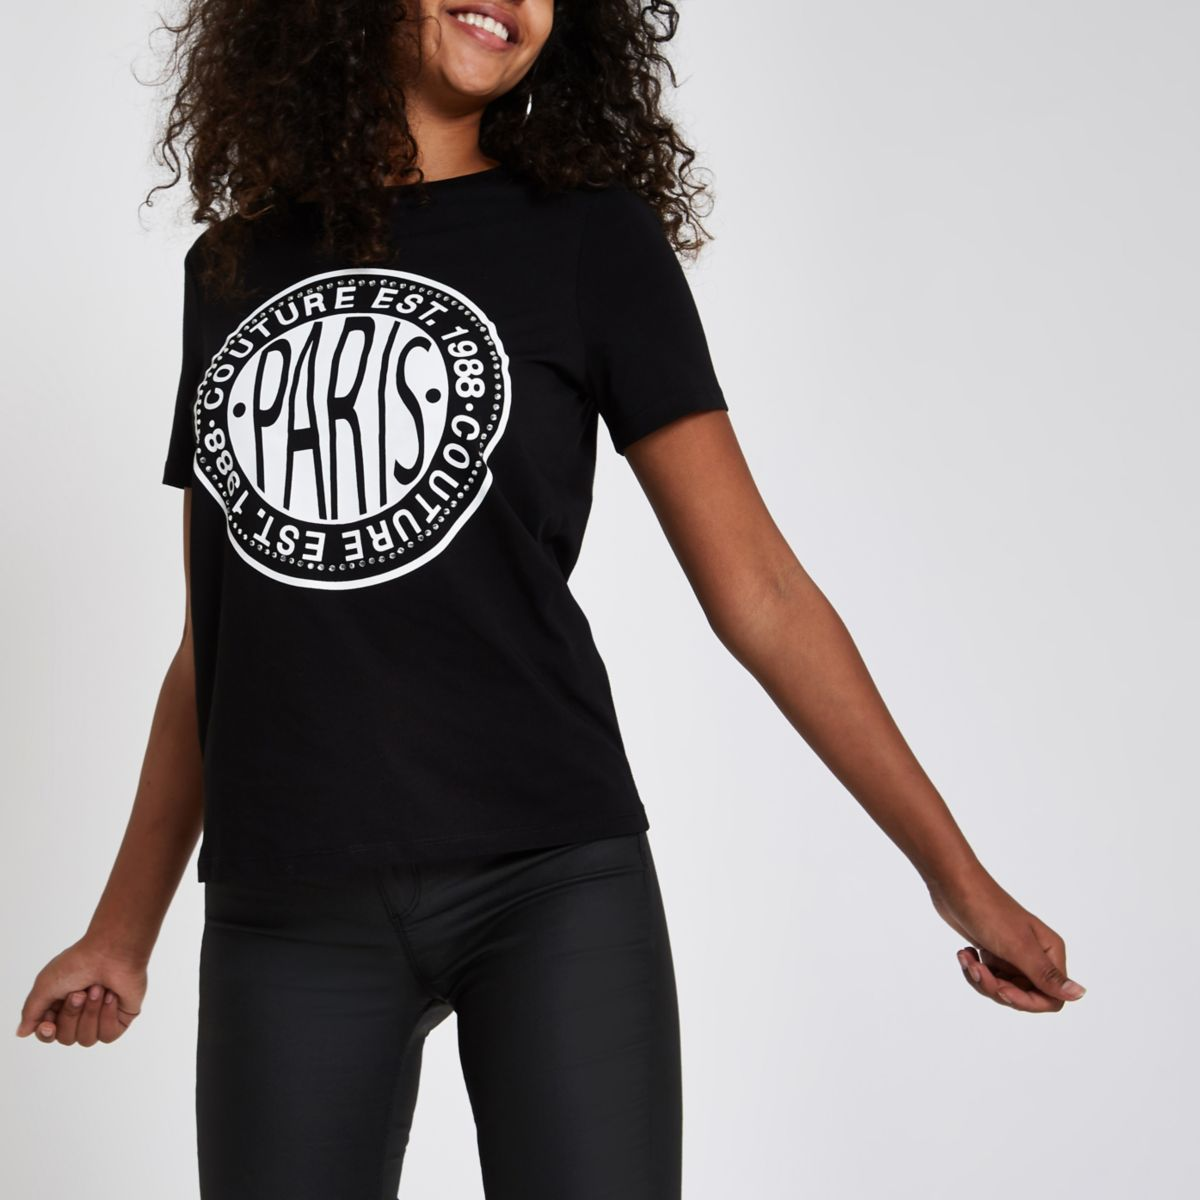 Black rhinestone embellished 'Paris' T-shirt